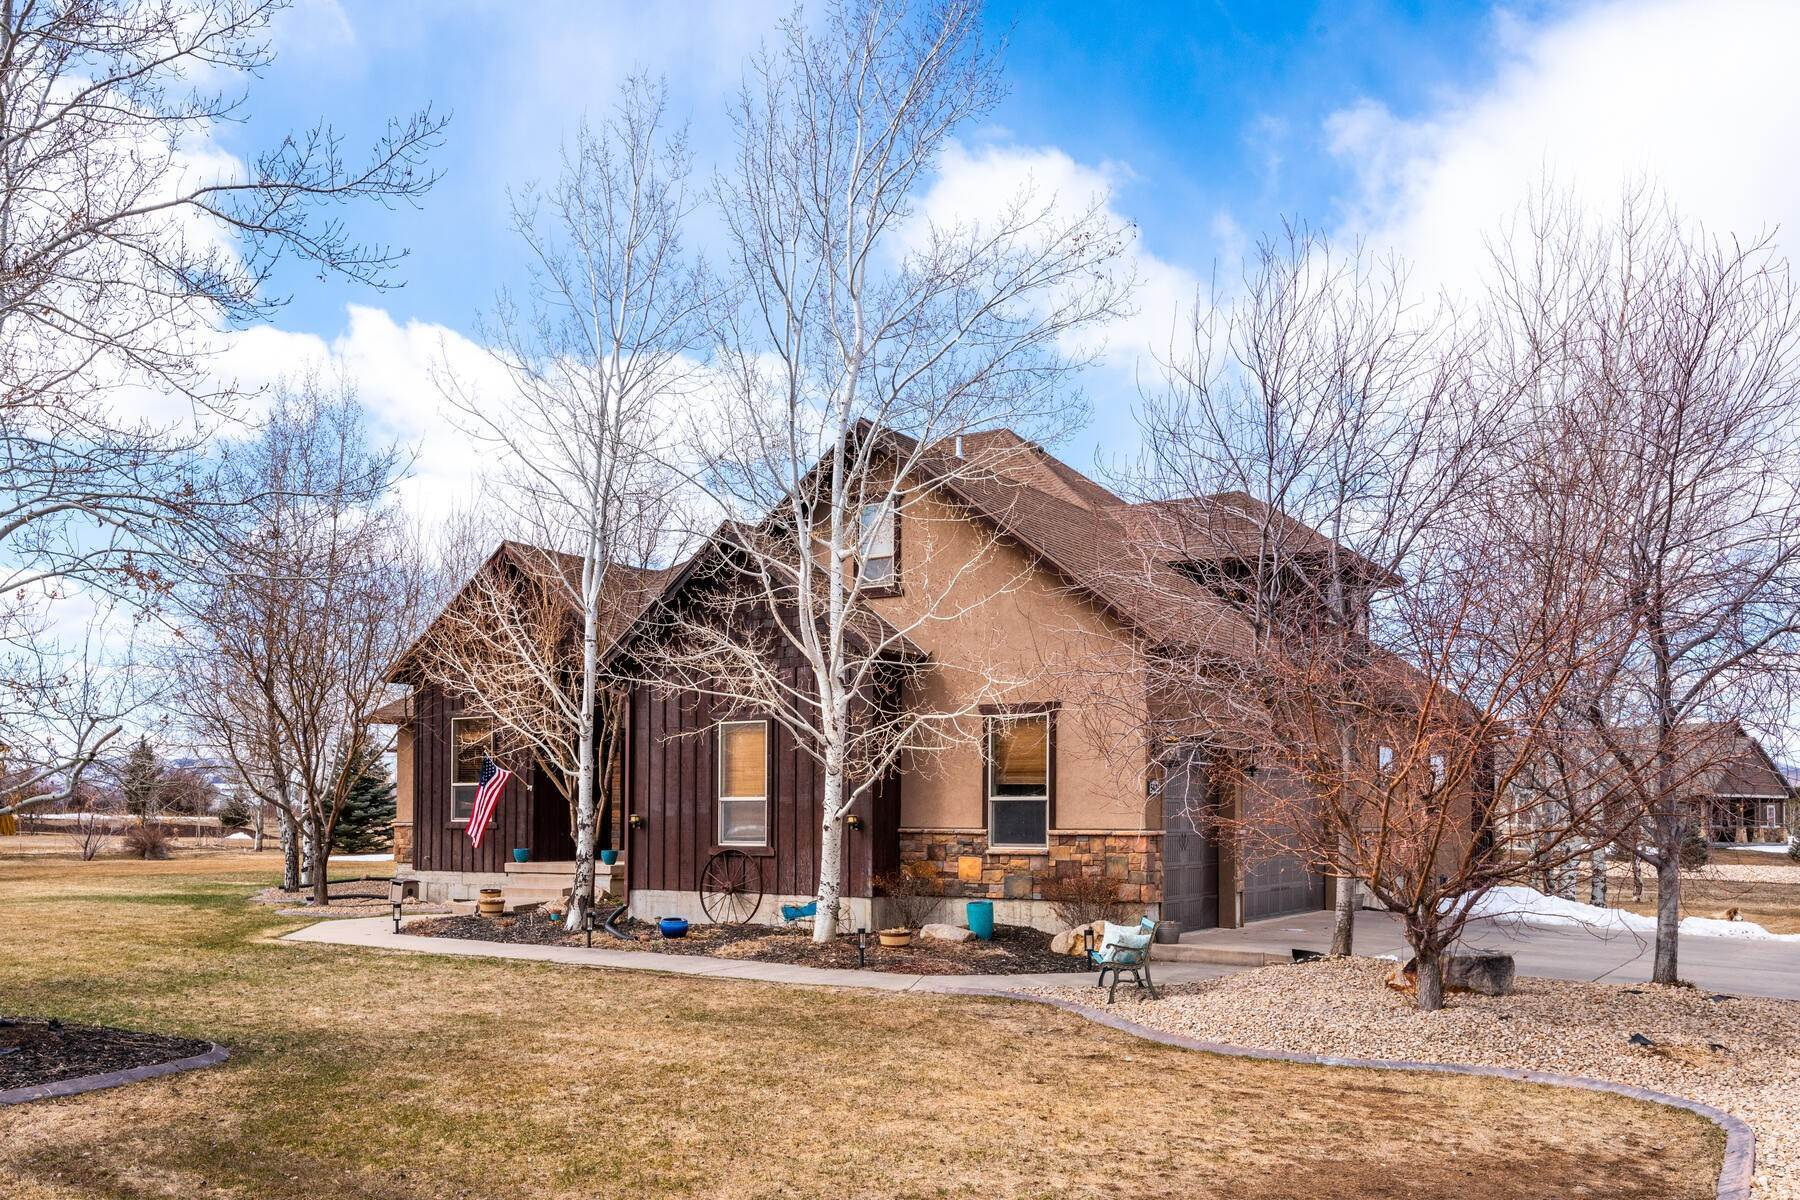 Single Family Homes for Sale at Expansive Home On One Acre in Oakley 5425 N Estates Ln Oakley, Utah 84055 United States